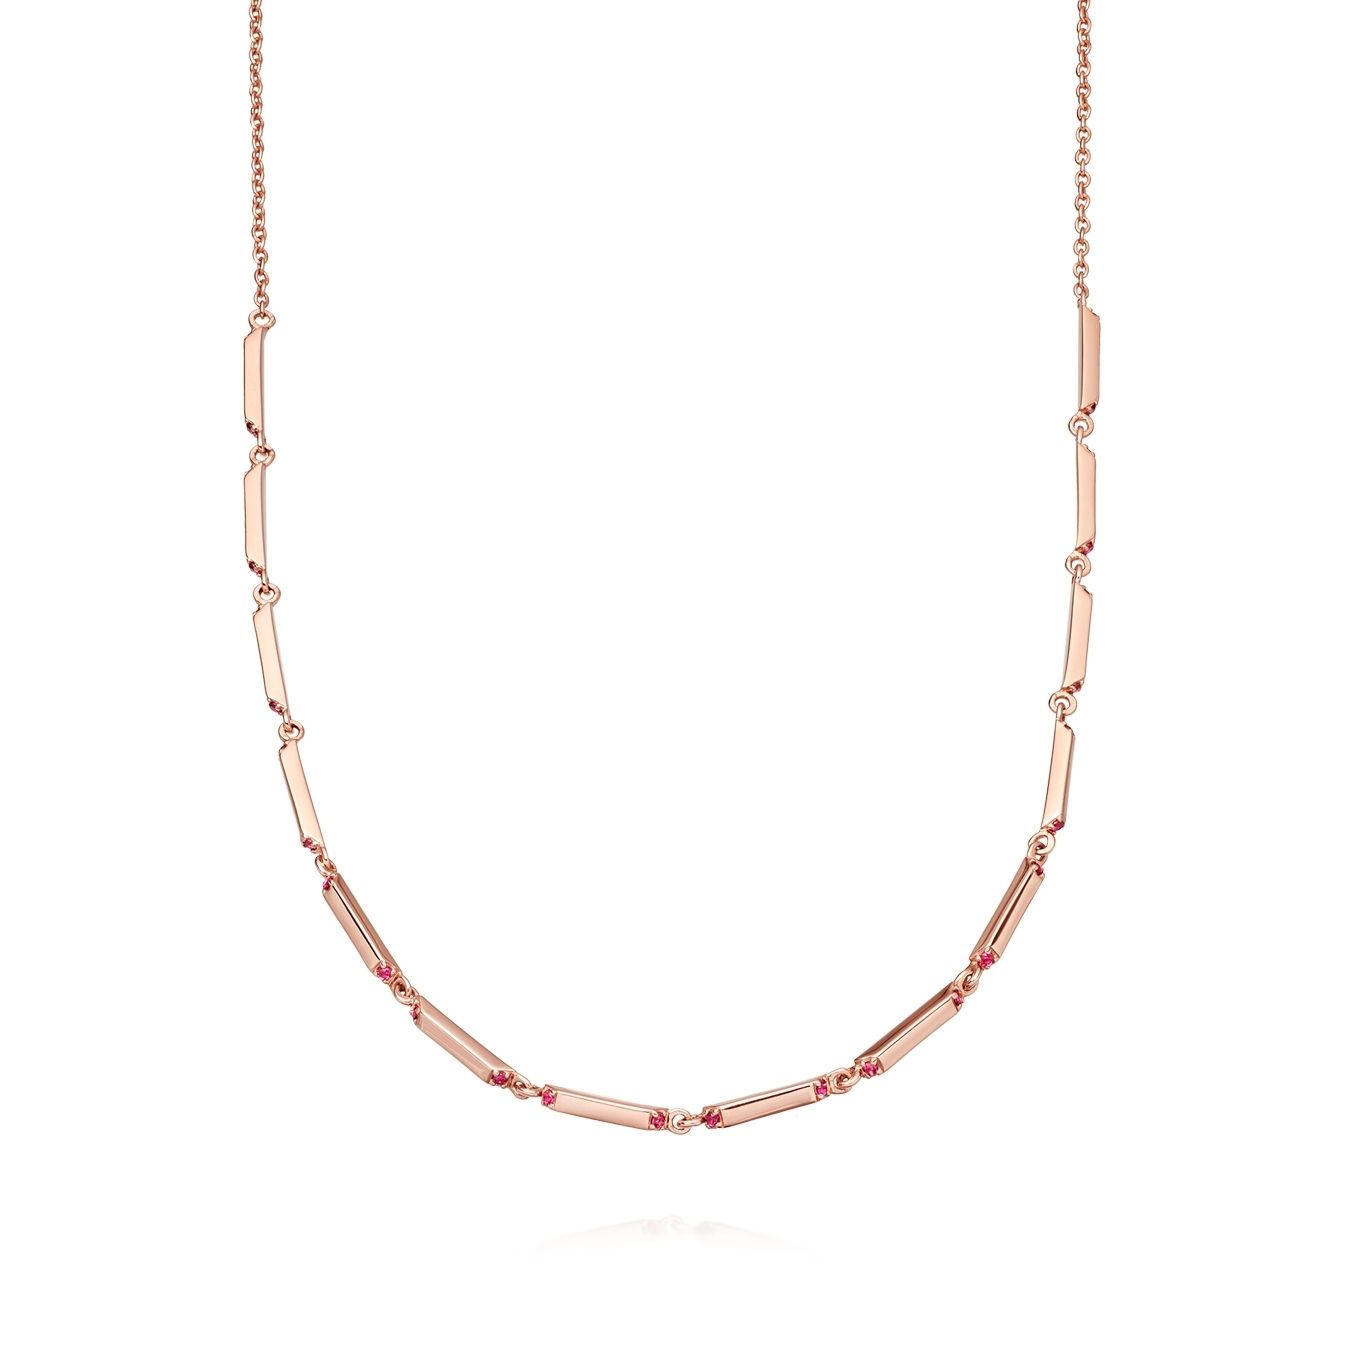 Aubar Ruby Necklace